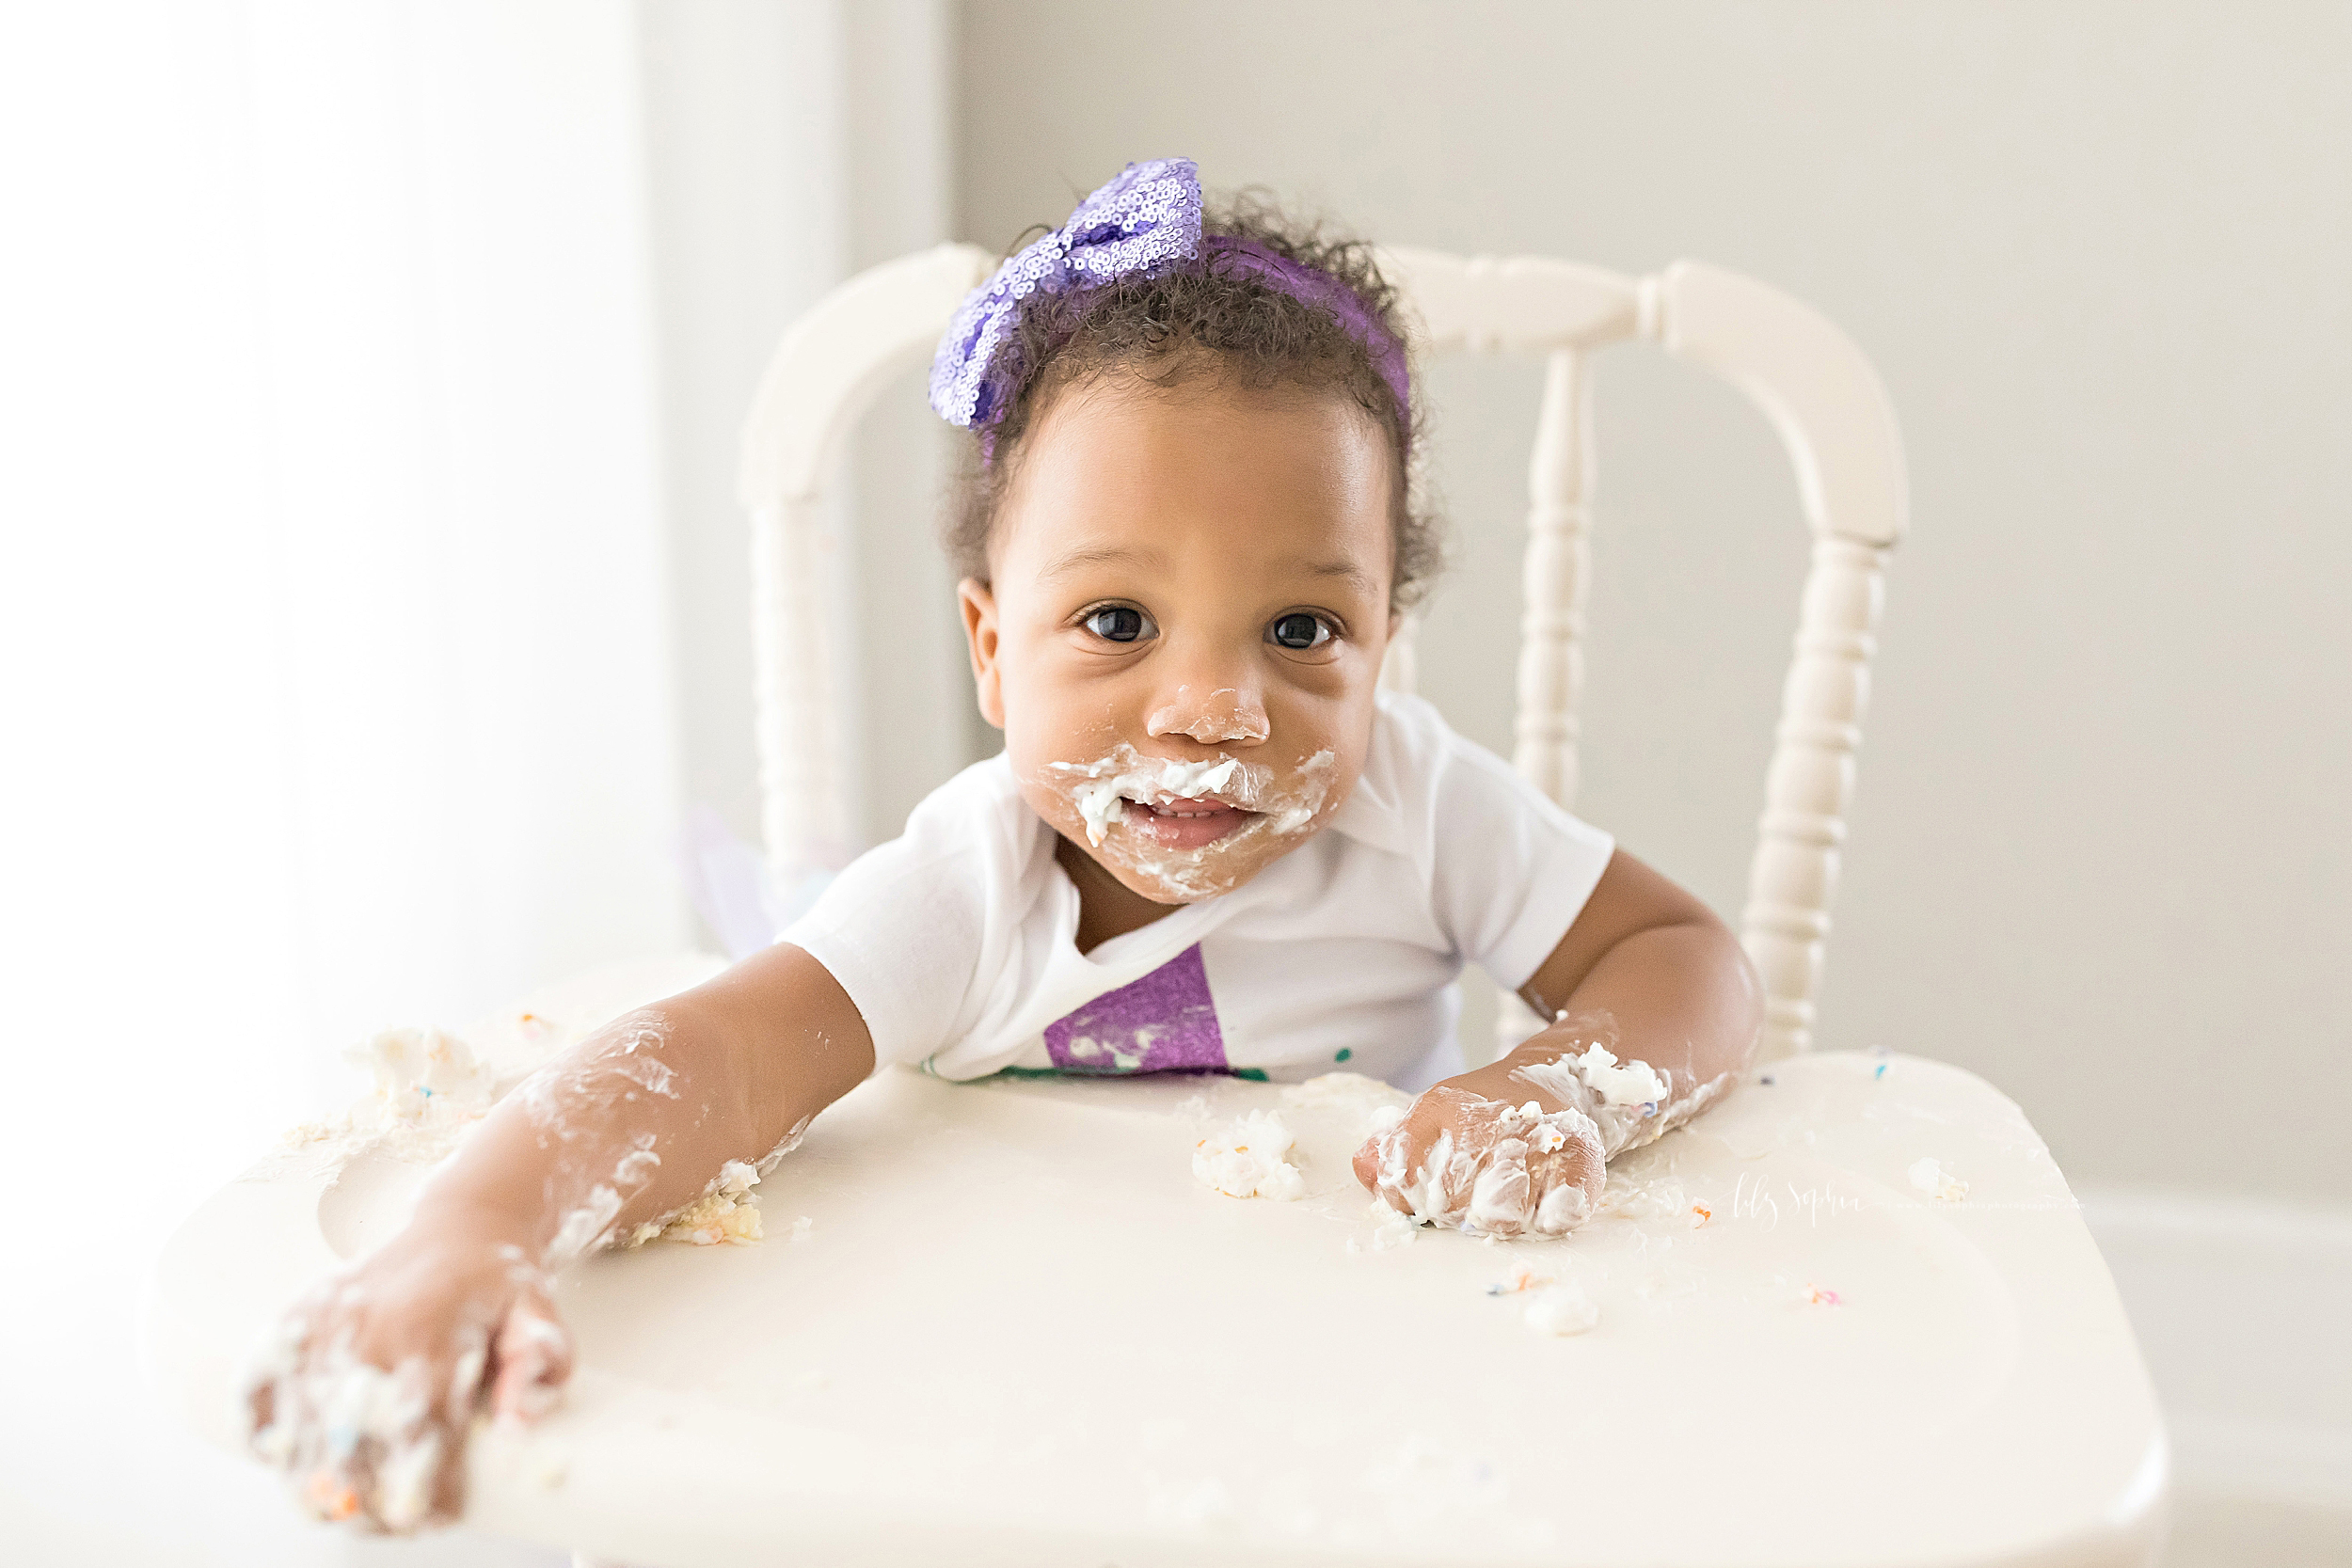 atlanta-buckhead-brookhaven-decatur-lily-sophia-photography--photographer-portraits-grant-park-intown-first-birthday-tutu-cake-smash_1005.jpg